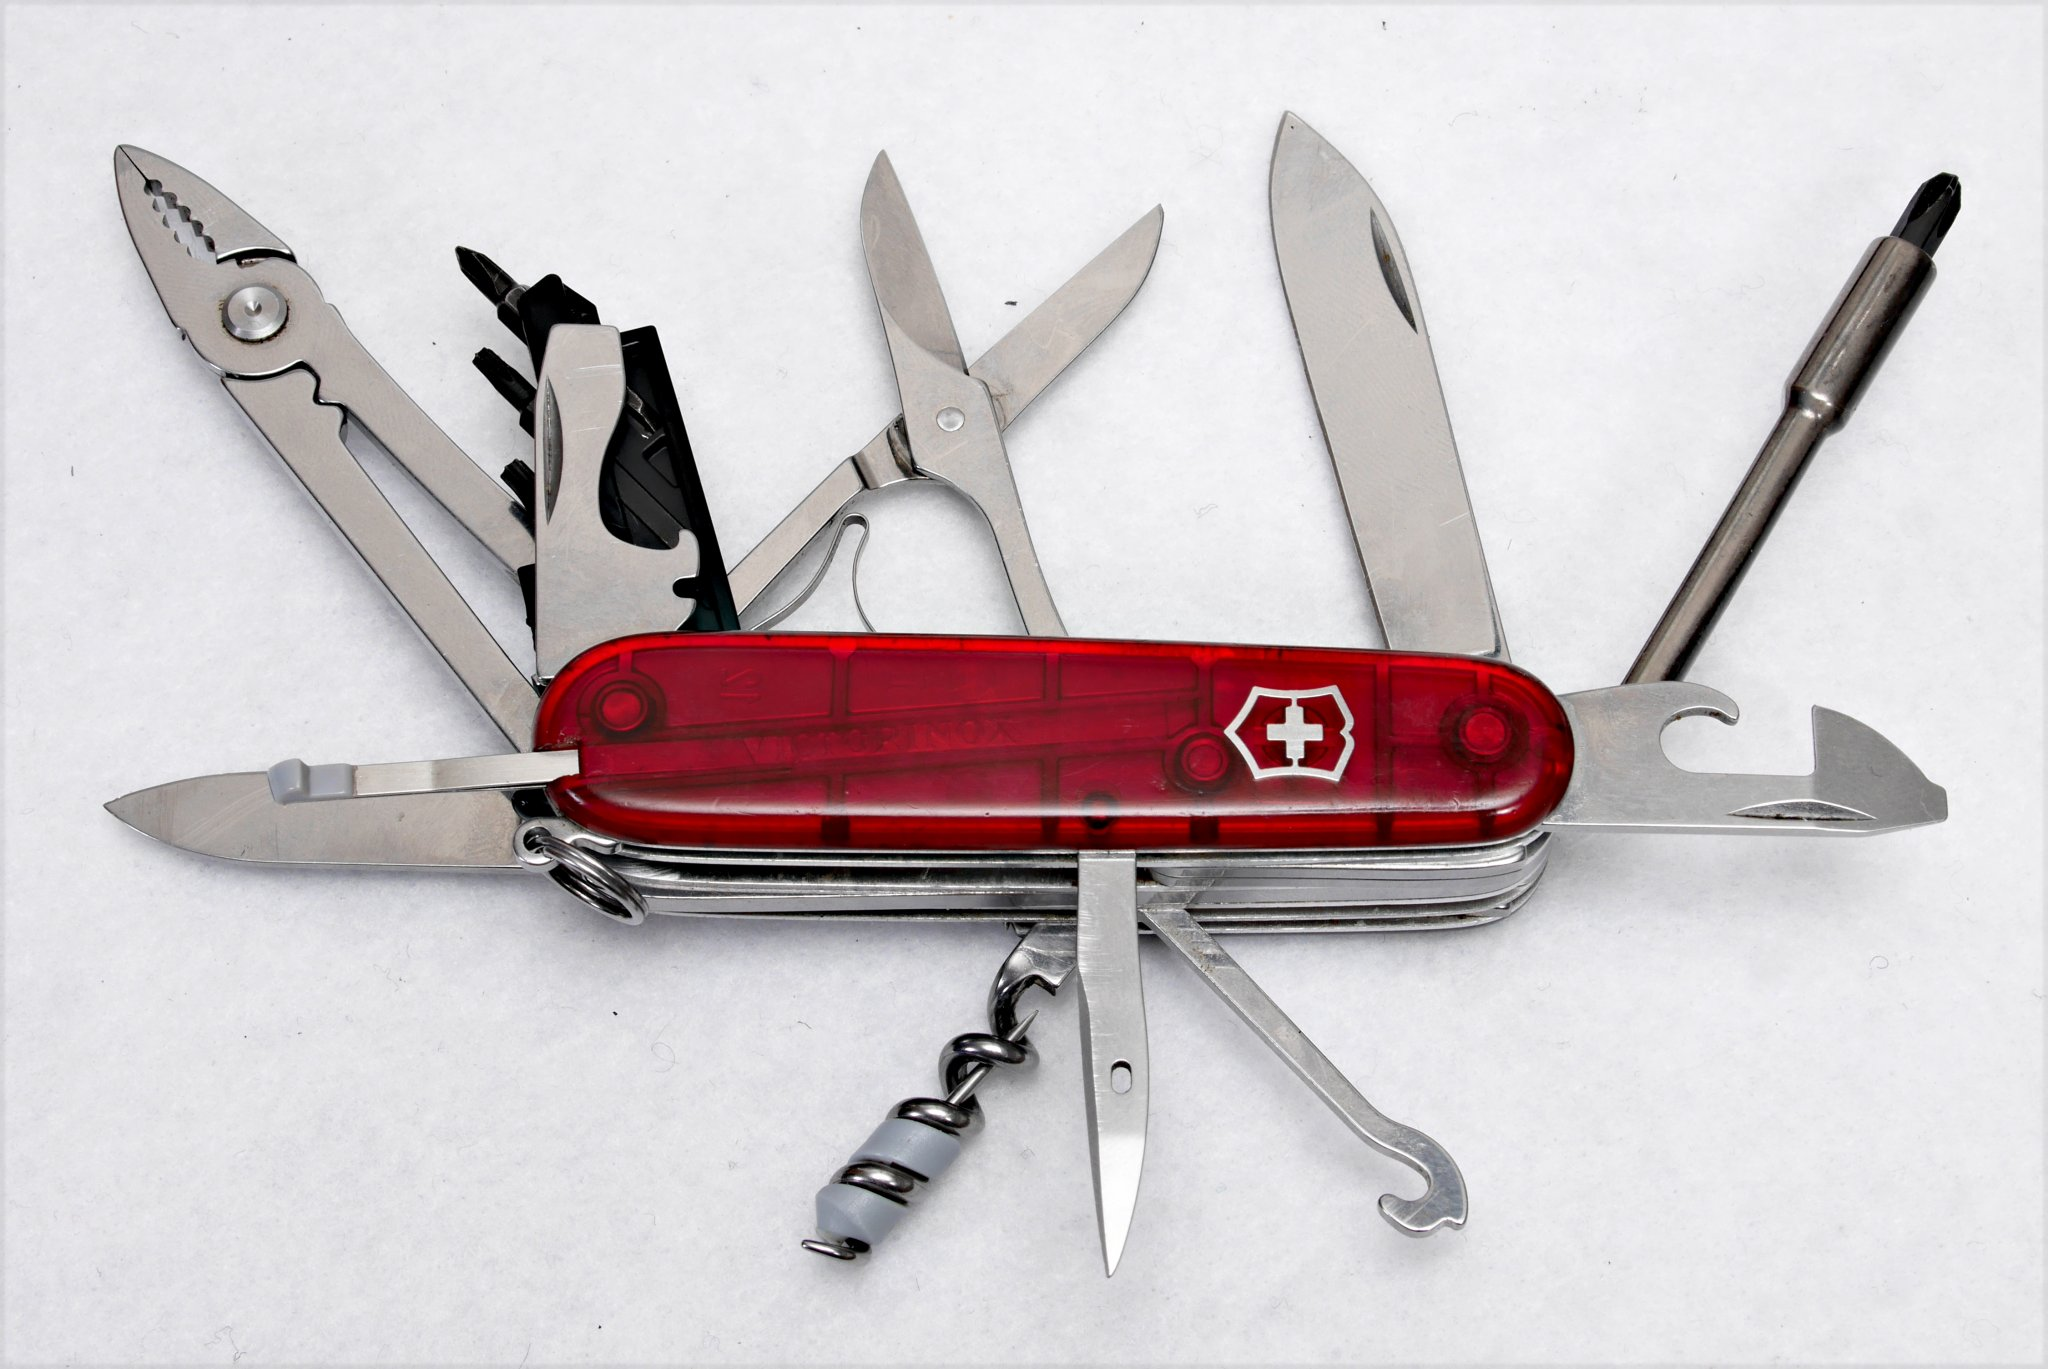 20201217-p2410515-swiss-army-knife-for-compoters